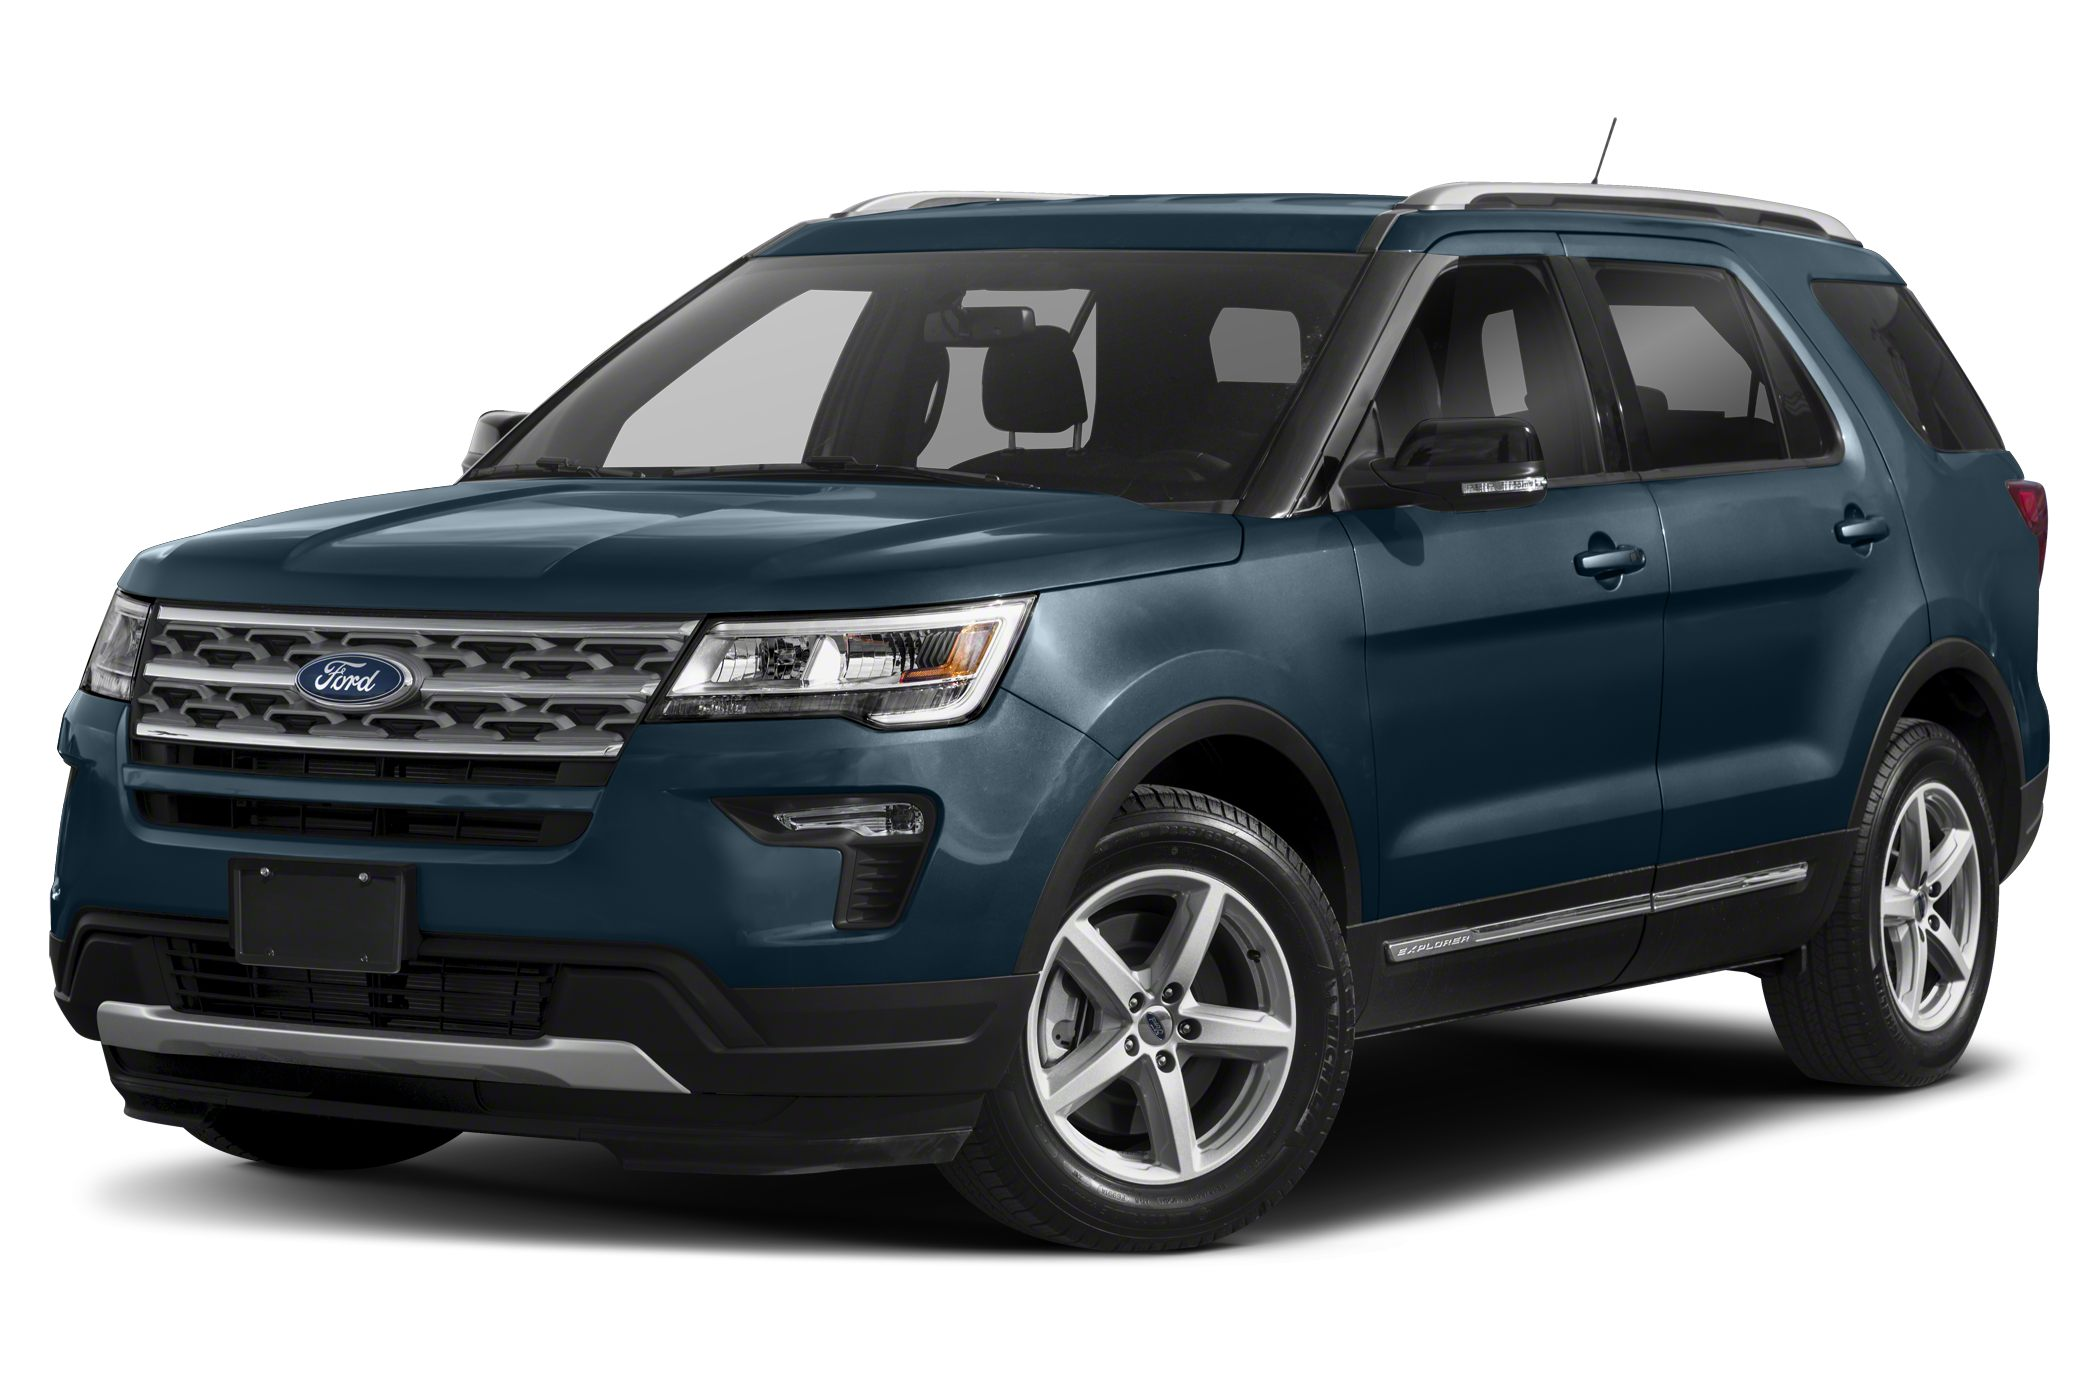 Car Residual Values >> 2018 Ford Explorer Deals, Prices, Incentives & Leases, Overview - CarsDirect